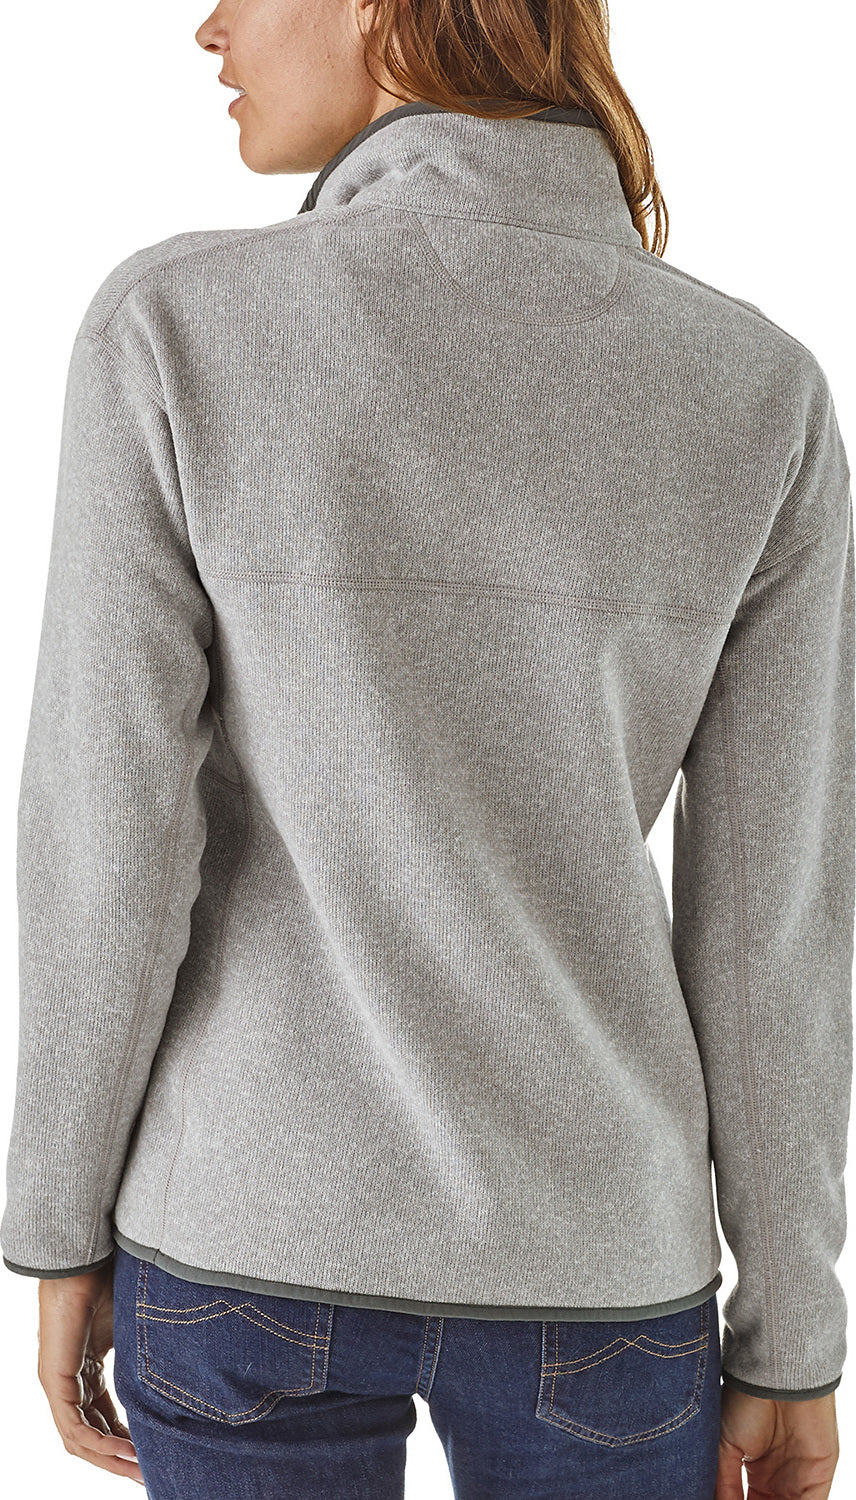 291bbaf57a1030 ... Patagonia Lightweight Better Sweater Marsupial Pullover - Women's thumb  ...